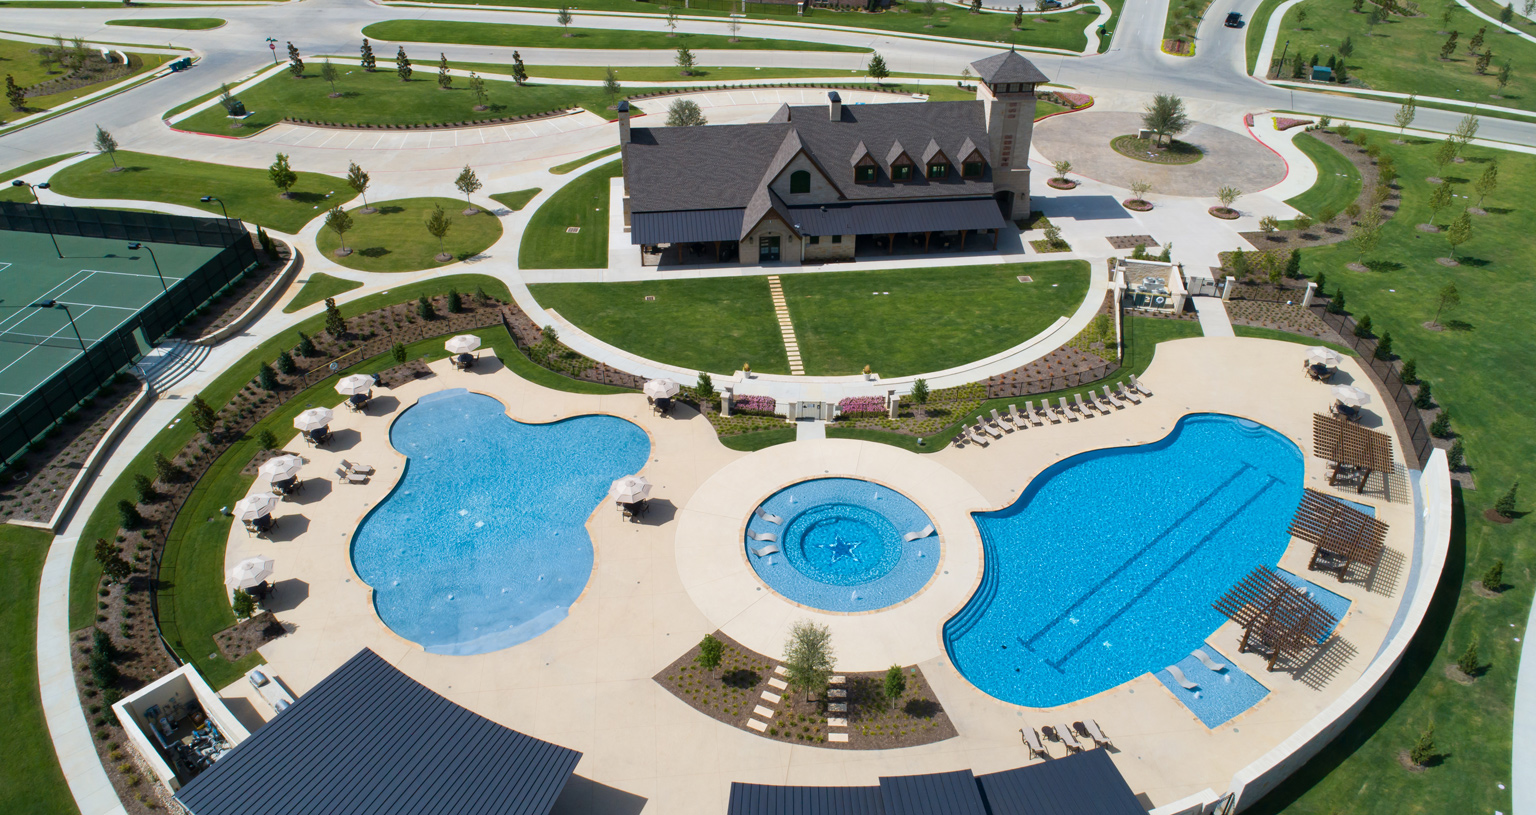 Star Trail amenity center and pools